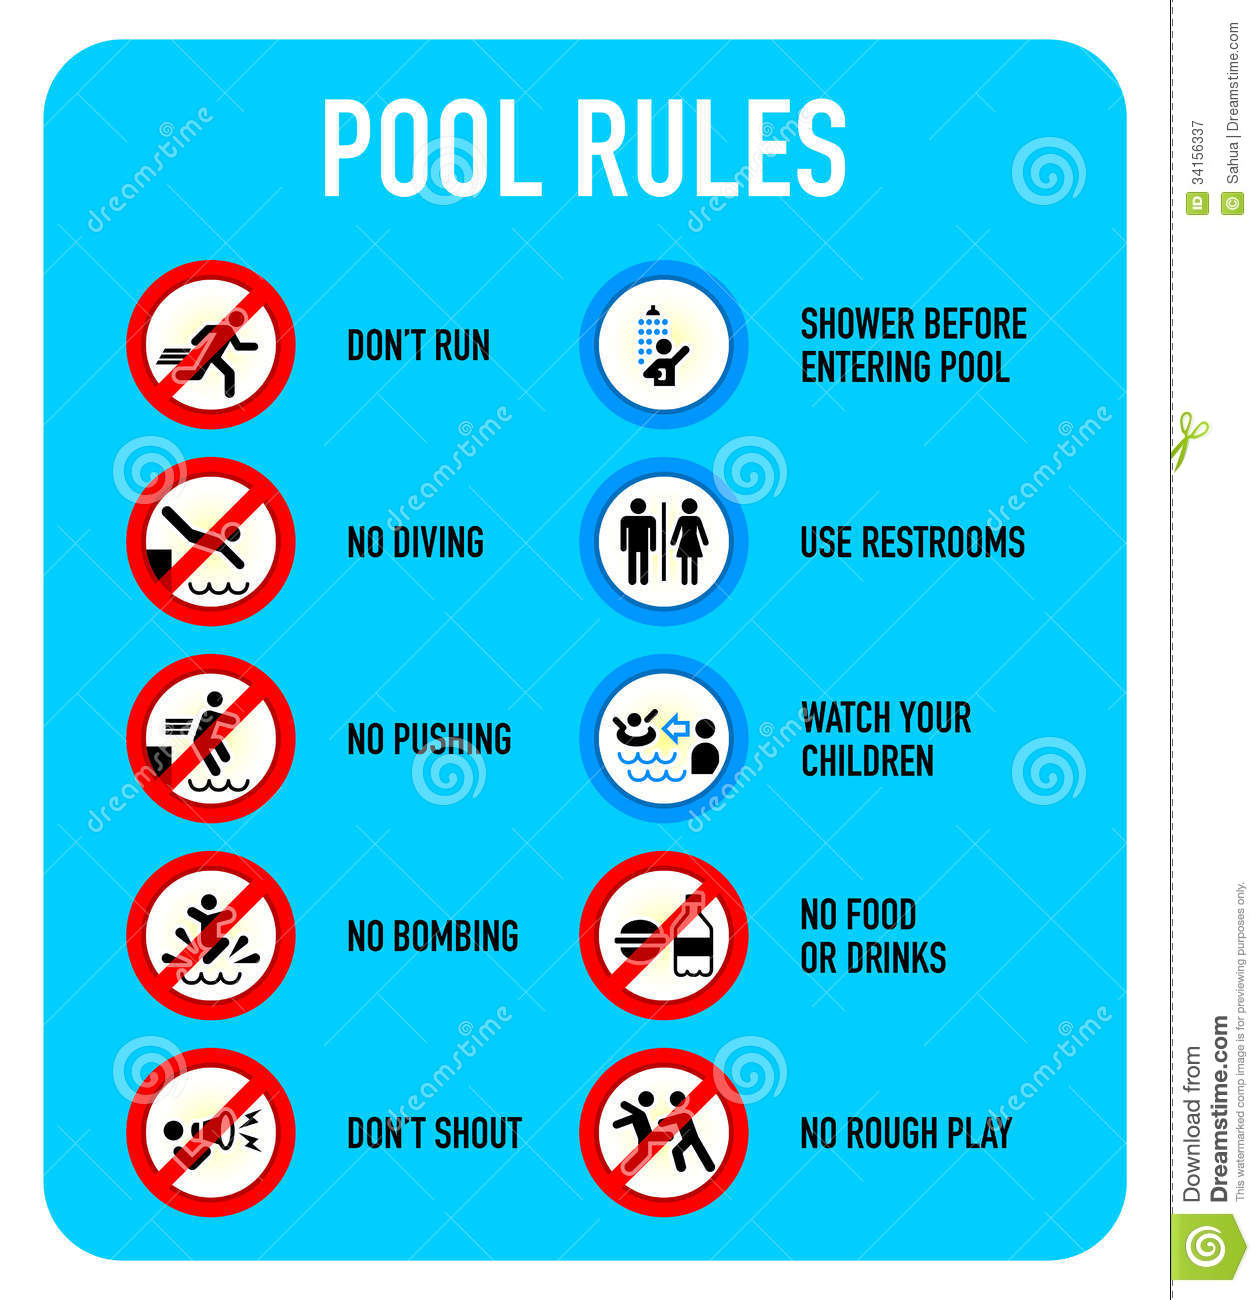 Pool Rules Signs Royalty Free Stock Photography - Image: 34156337